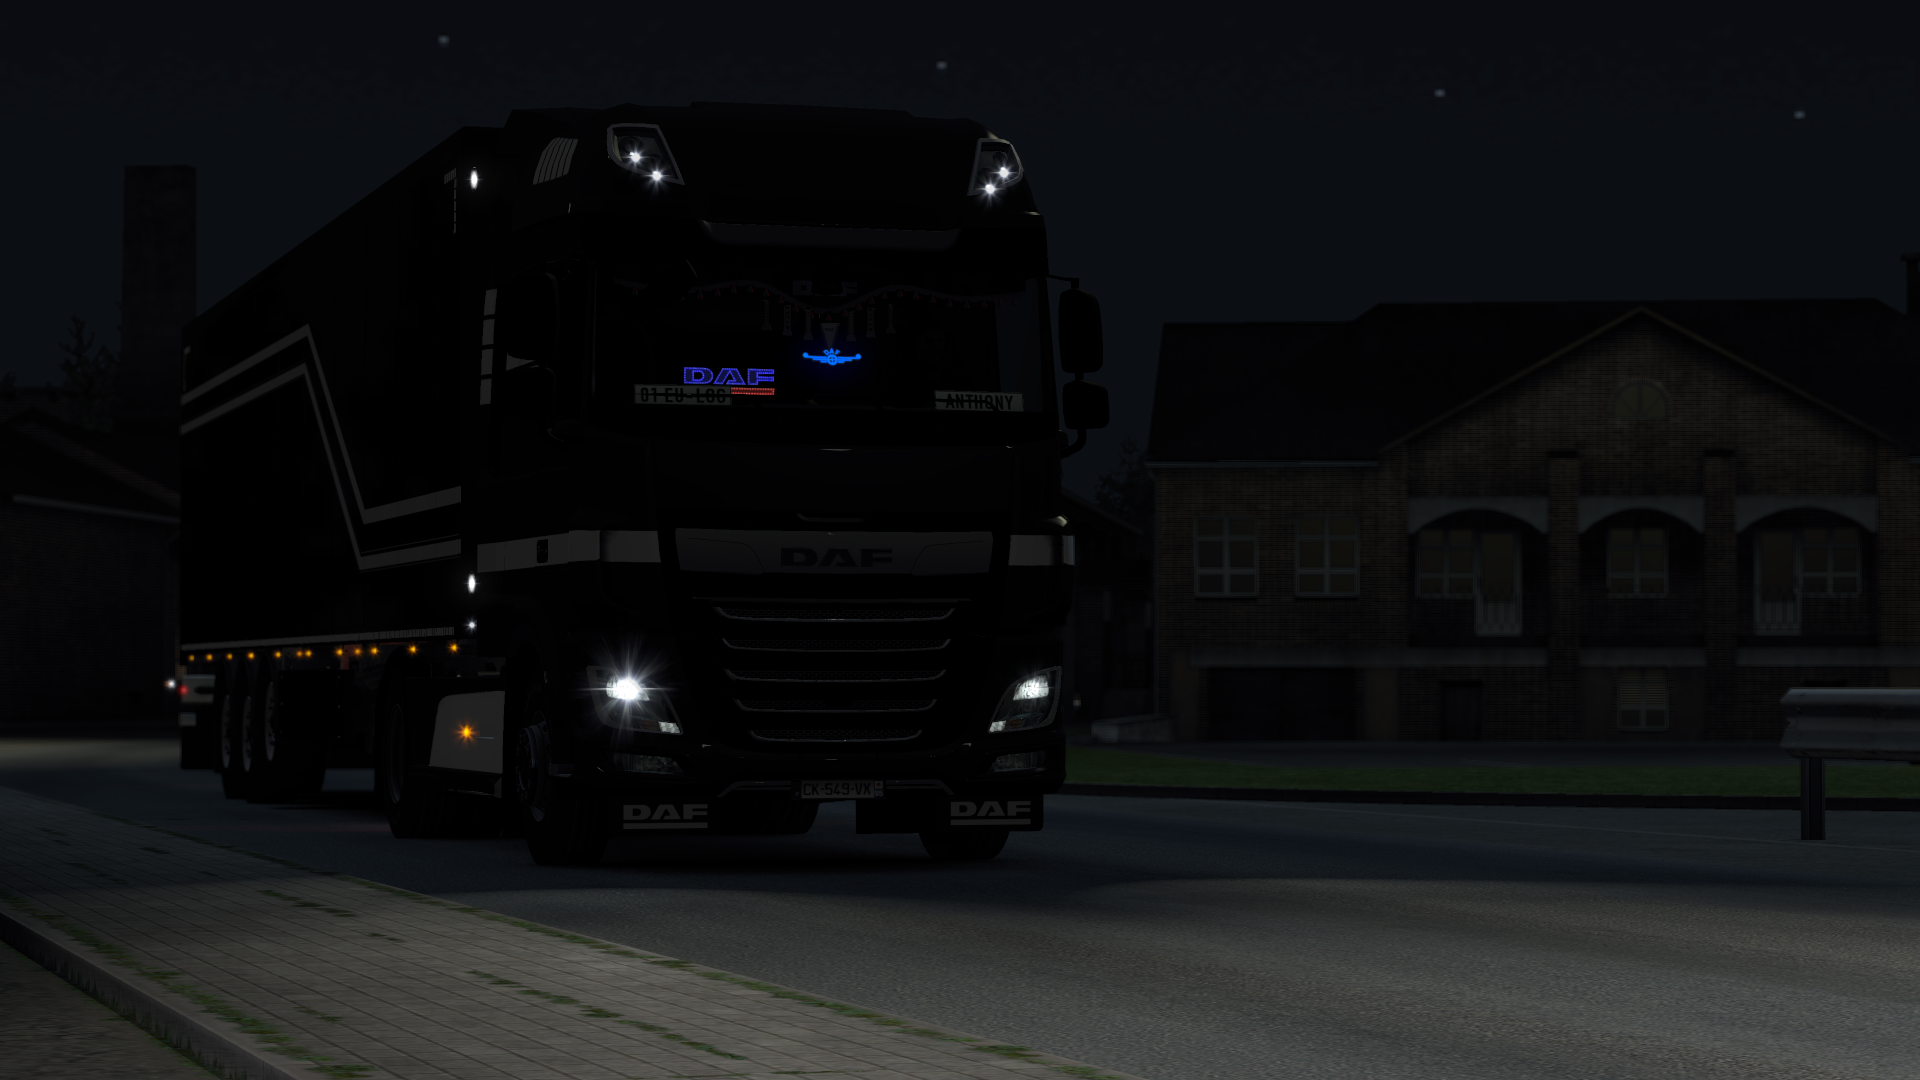 ets2_20180814_184346_00.png